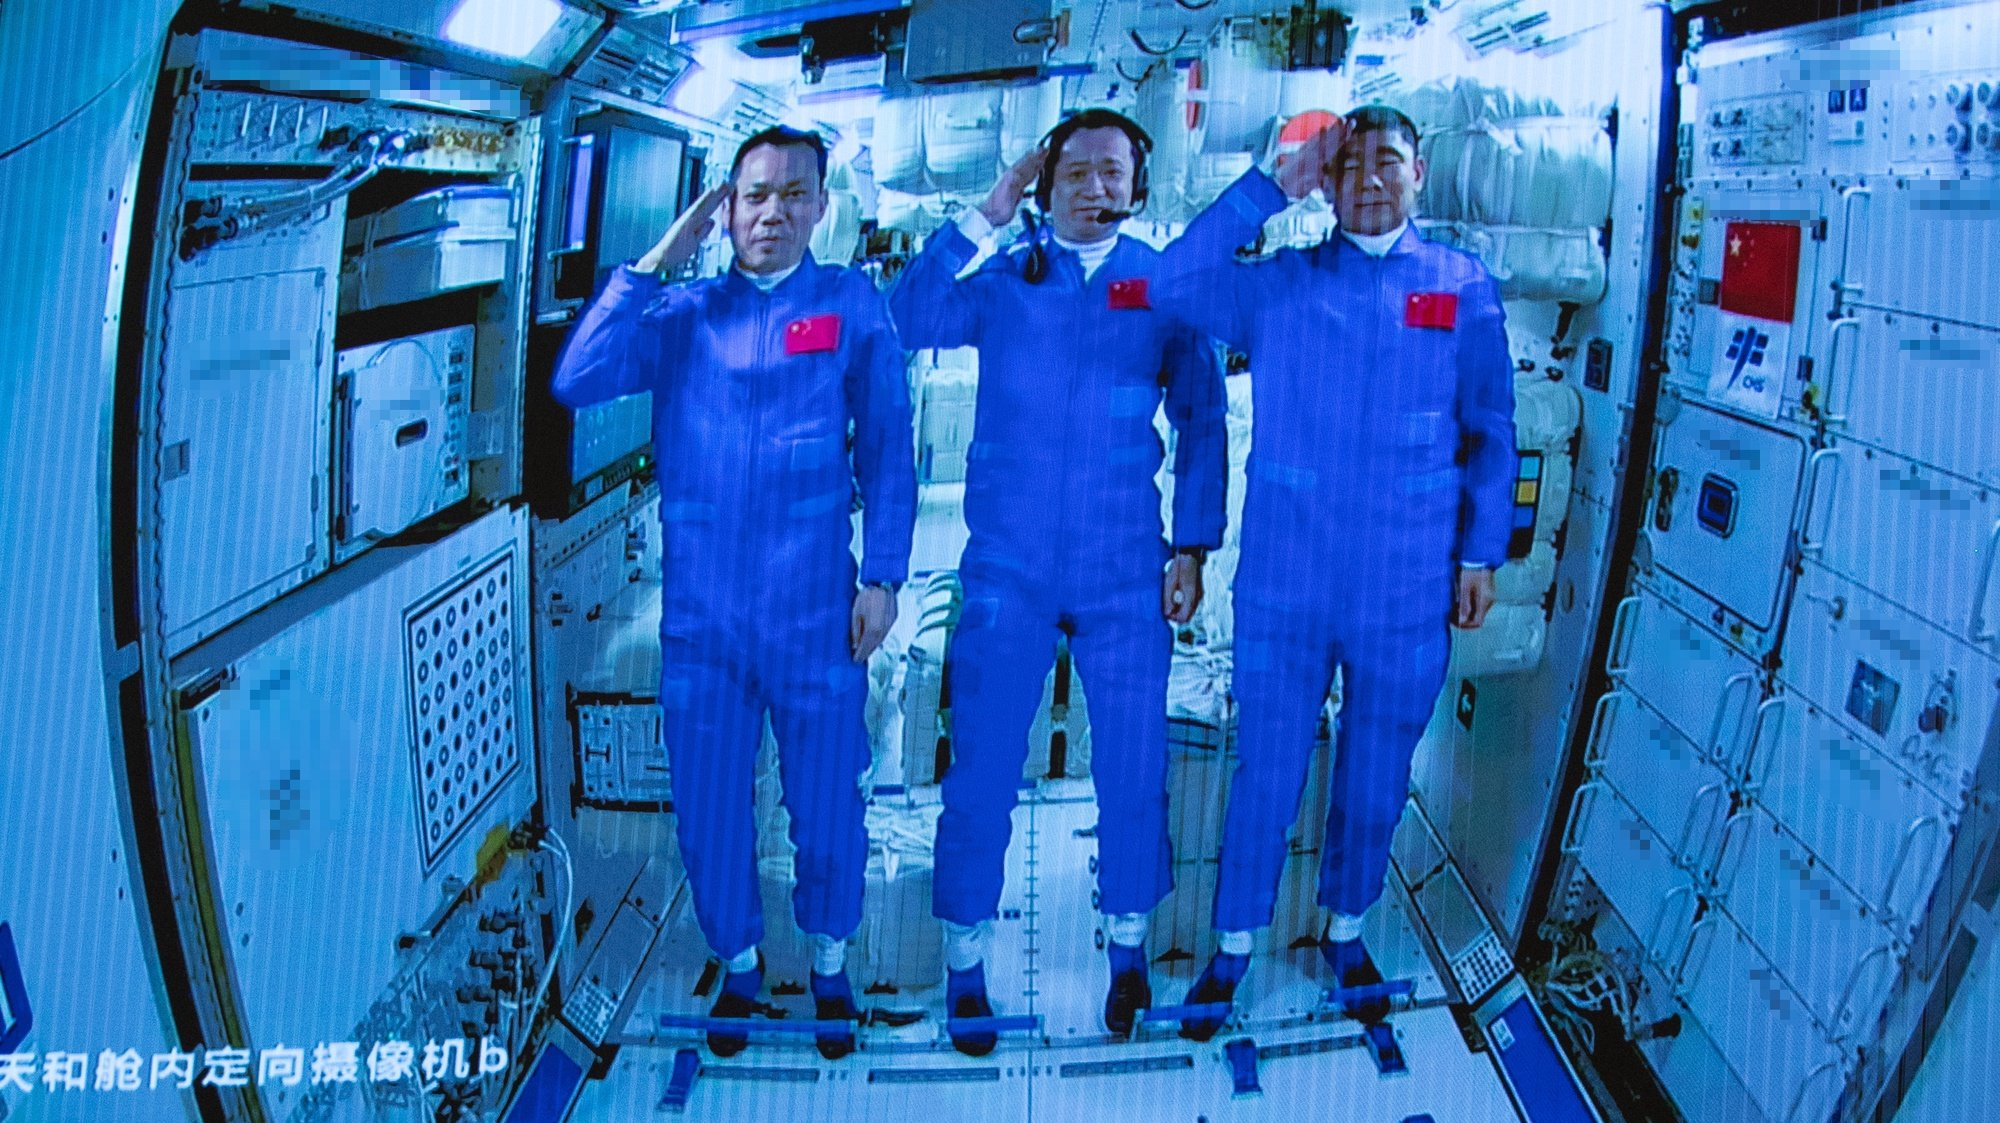 epa09281811 A screen image made available by Xinhua News Agency captured at the Beijing Aerospace Control Center shows three Chinese astronauts onboard the Shenzhou-12 spaceship saluting after entering the Tianhe space station core module in Beijing, China, 17 June 2021 (issued 18 June 2021). China launched the Shenzhou-12 spacecraft carrying three crew members Tang Hongbo, Nie Haisheng, and Liu Boming to the orbiting Tianhe core module for a three-month mission on 17 June. The mission is China's first manned spaceflight in almost five years.  EPA/XINHUA/JIN LIWANG MANDATORY CREDIT EDITORIAL USE ONLY/NO SALES